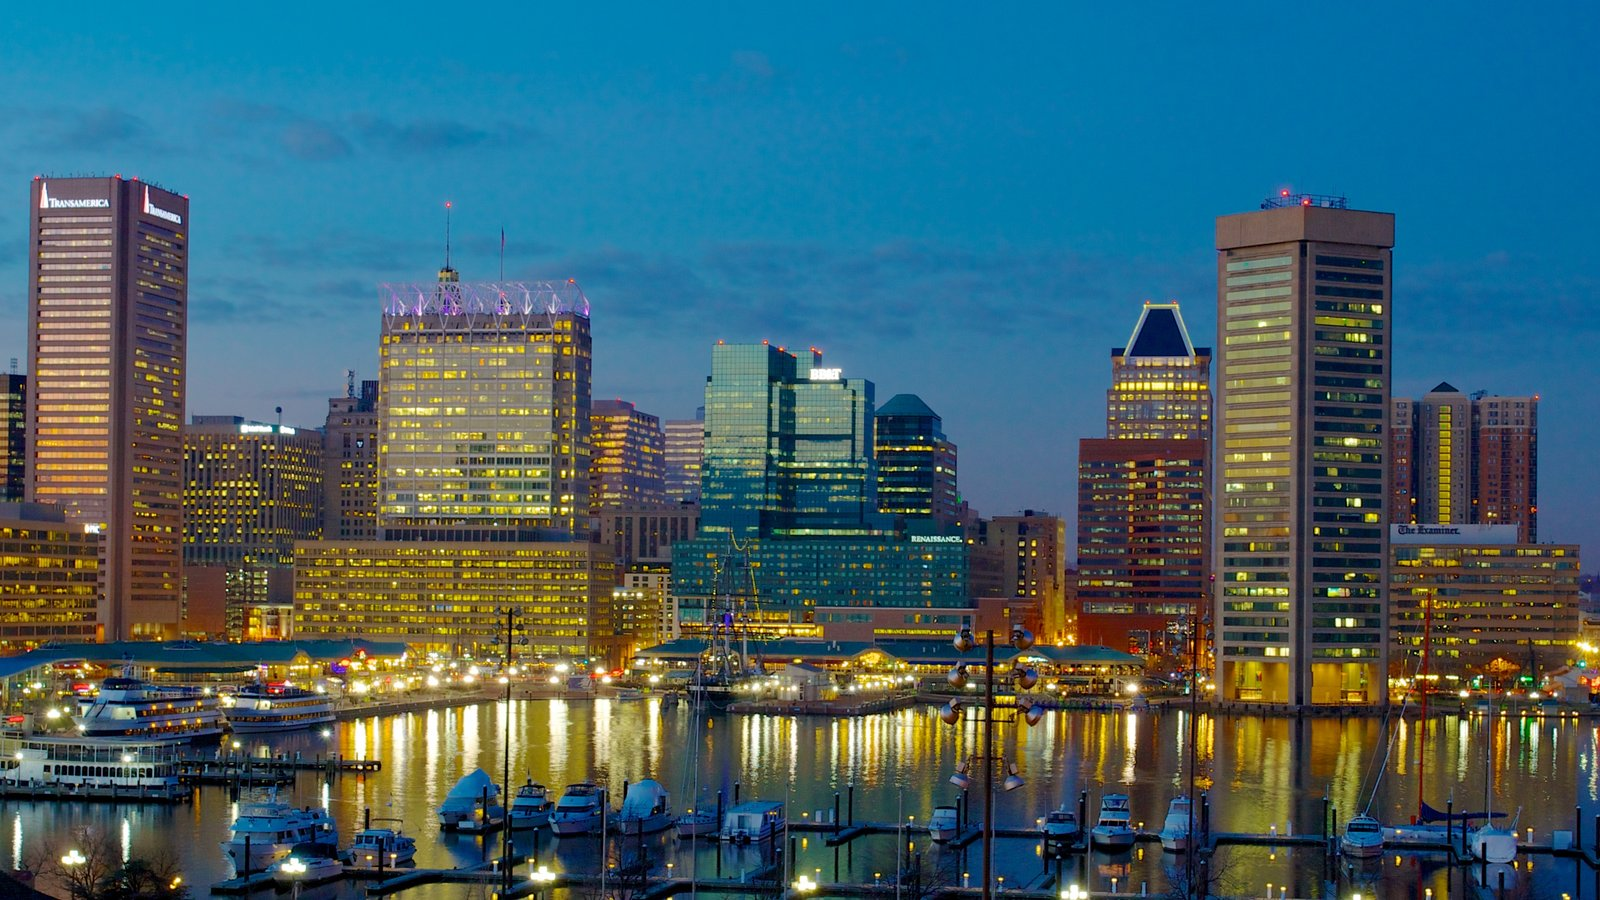 Baltimore Inner Harbor Marina featuring a marina, central business district and boating